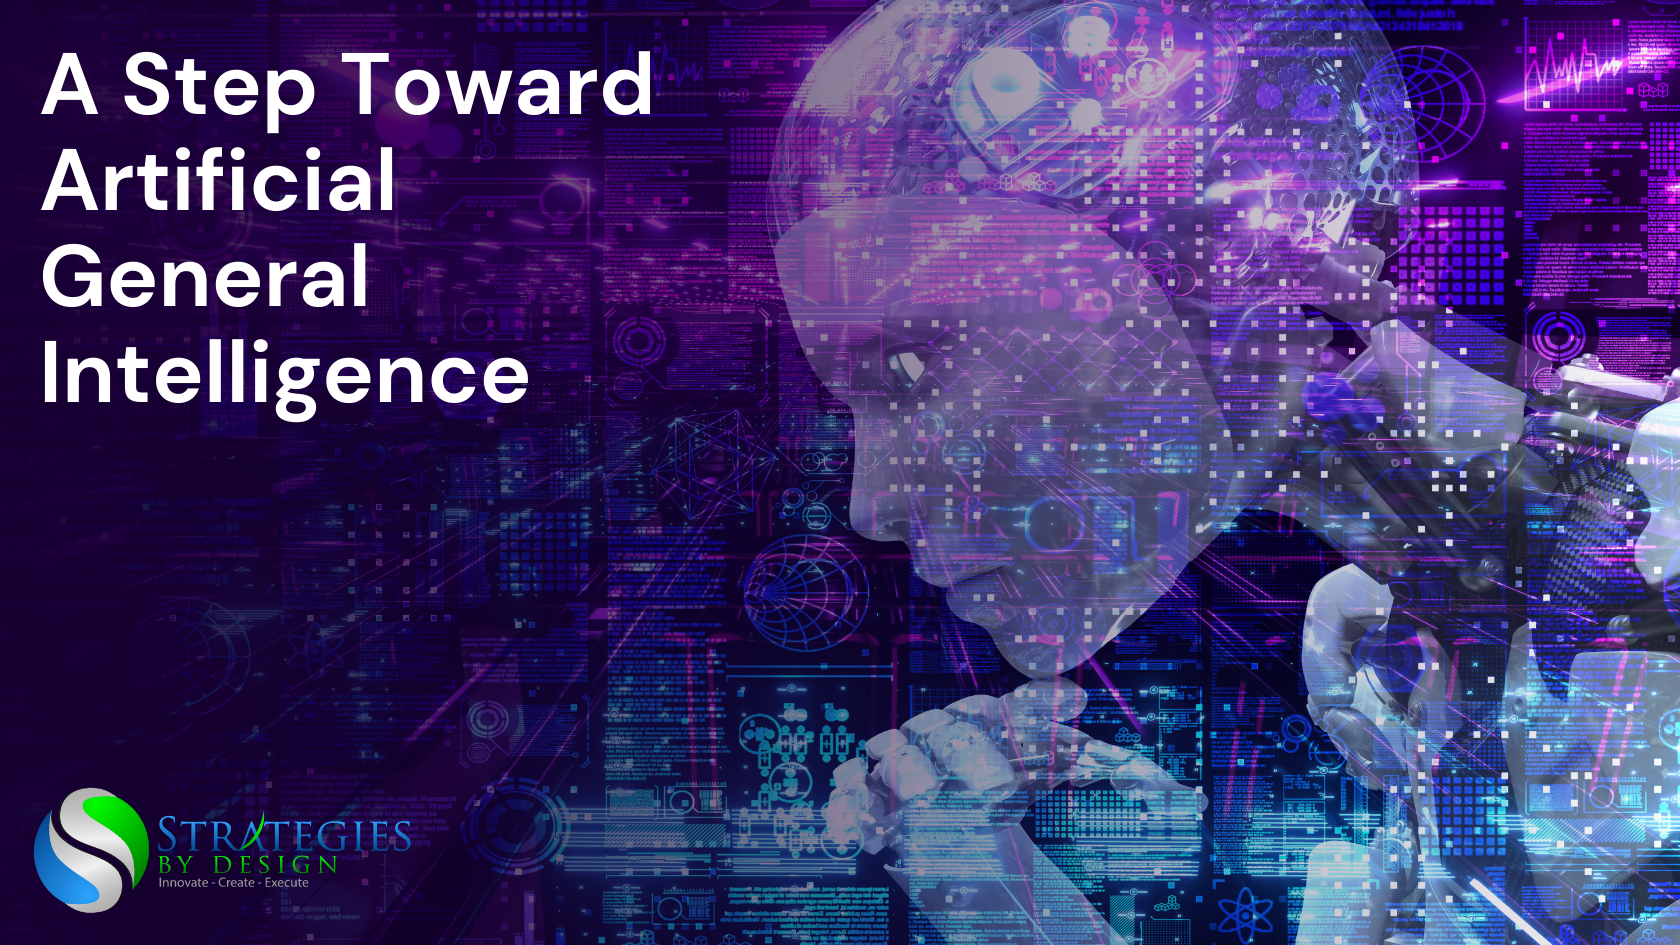 A Step Toward Artificial General Intelligence - Strategies by Design - Featured Image